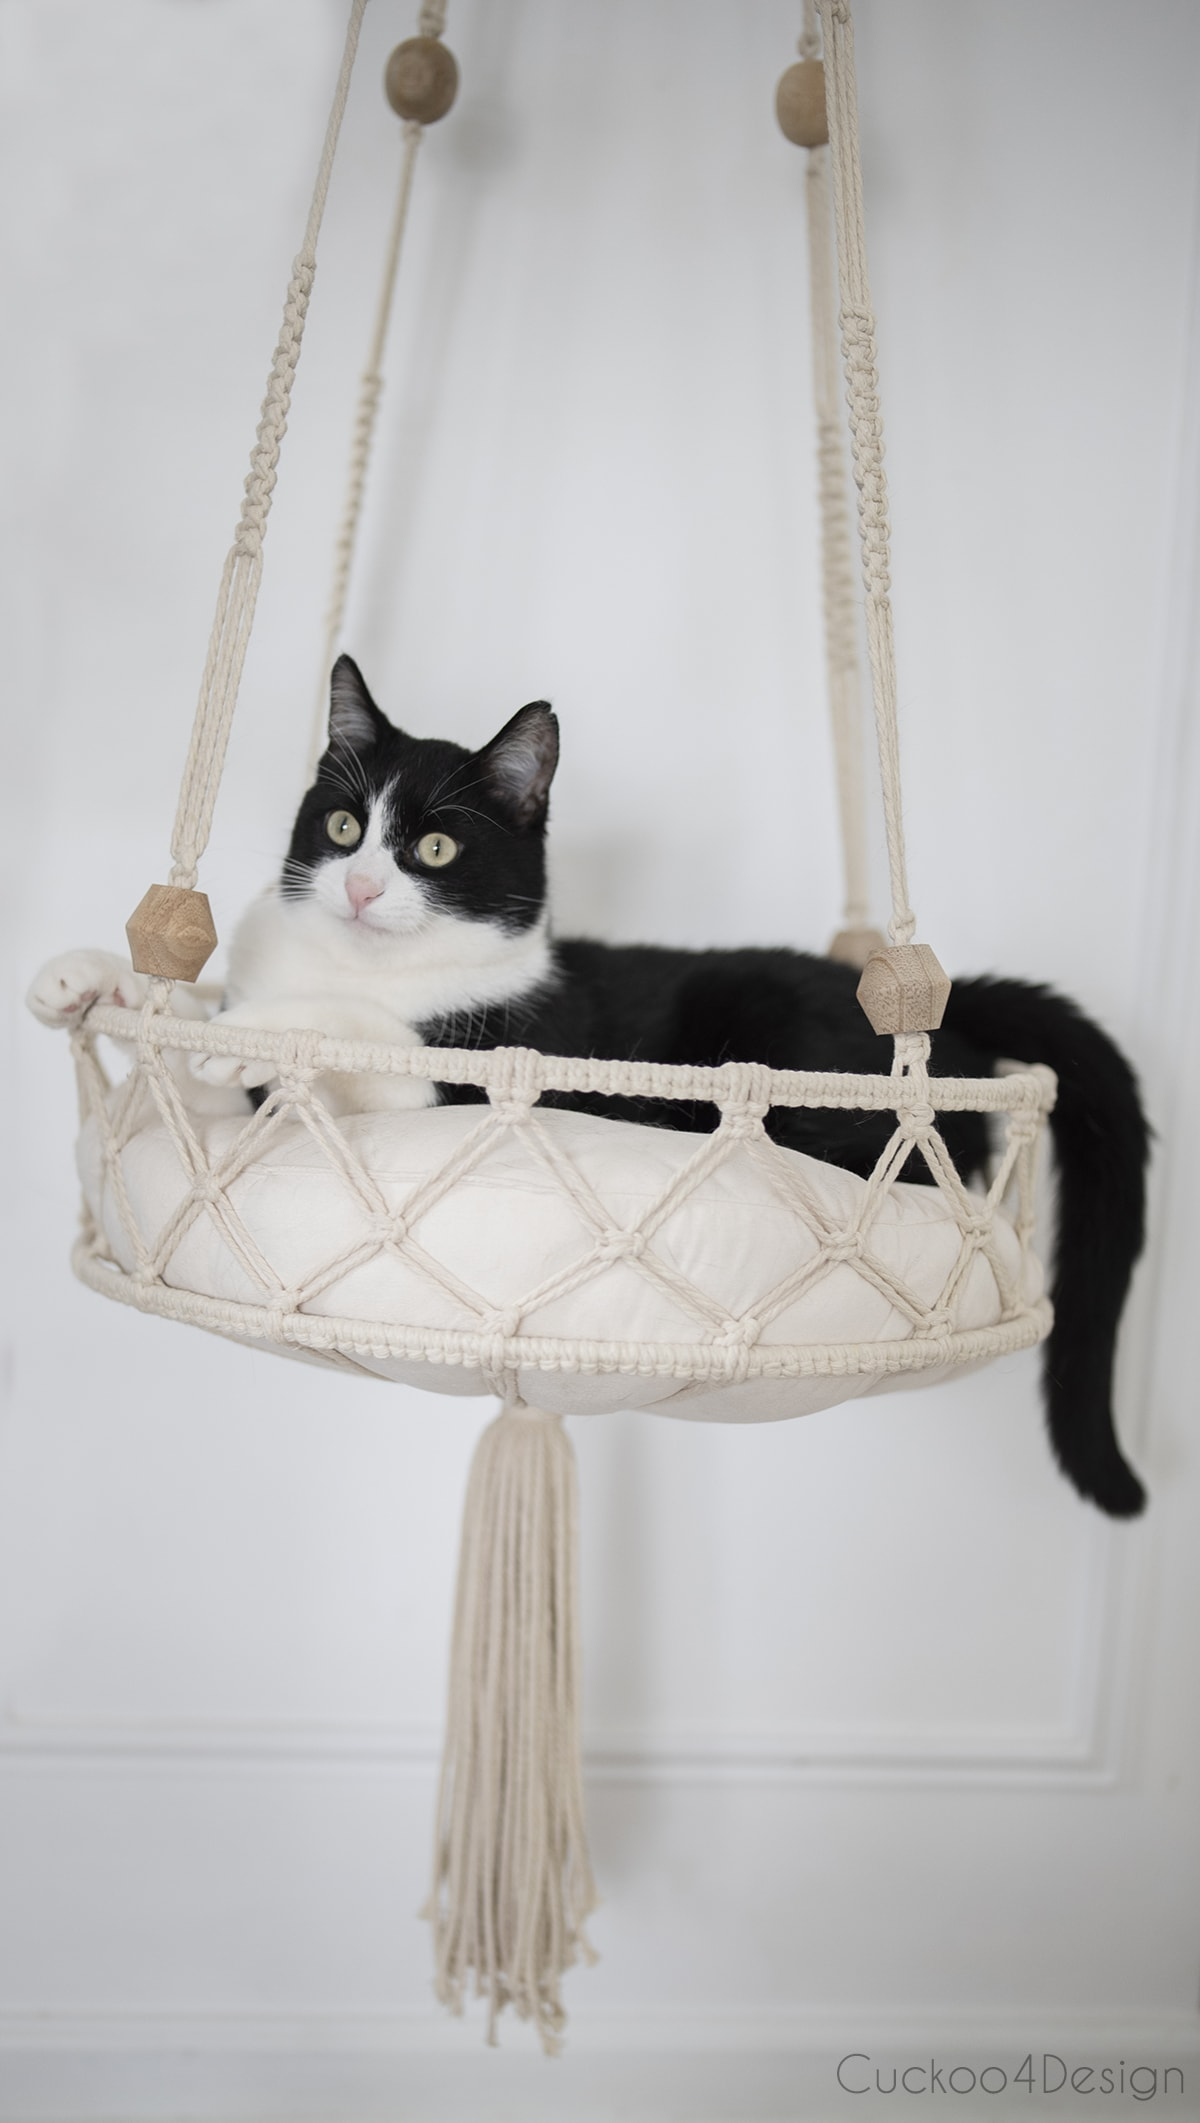 tuxedo cat lounging in hanging macrame cat bed